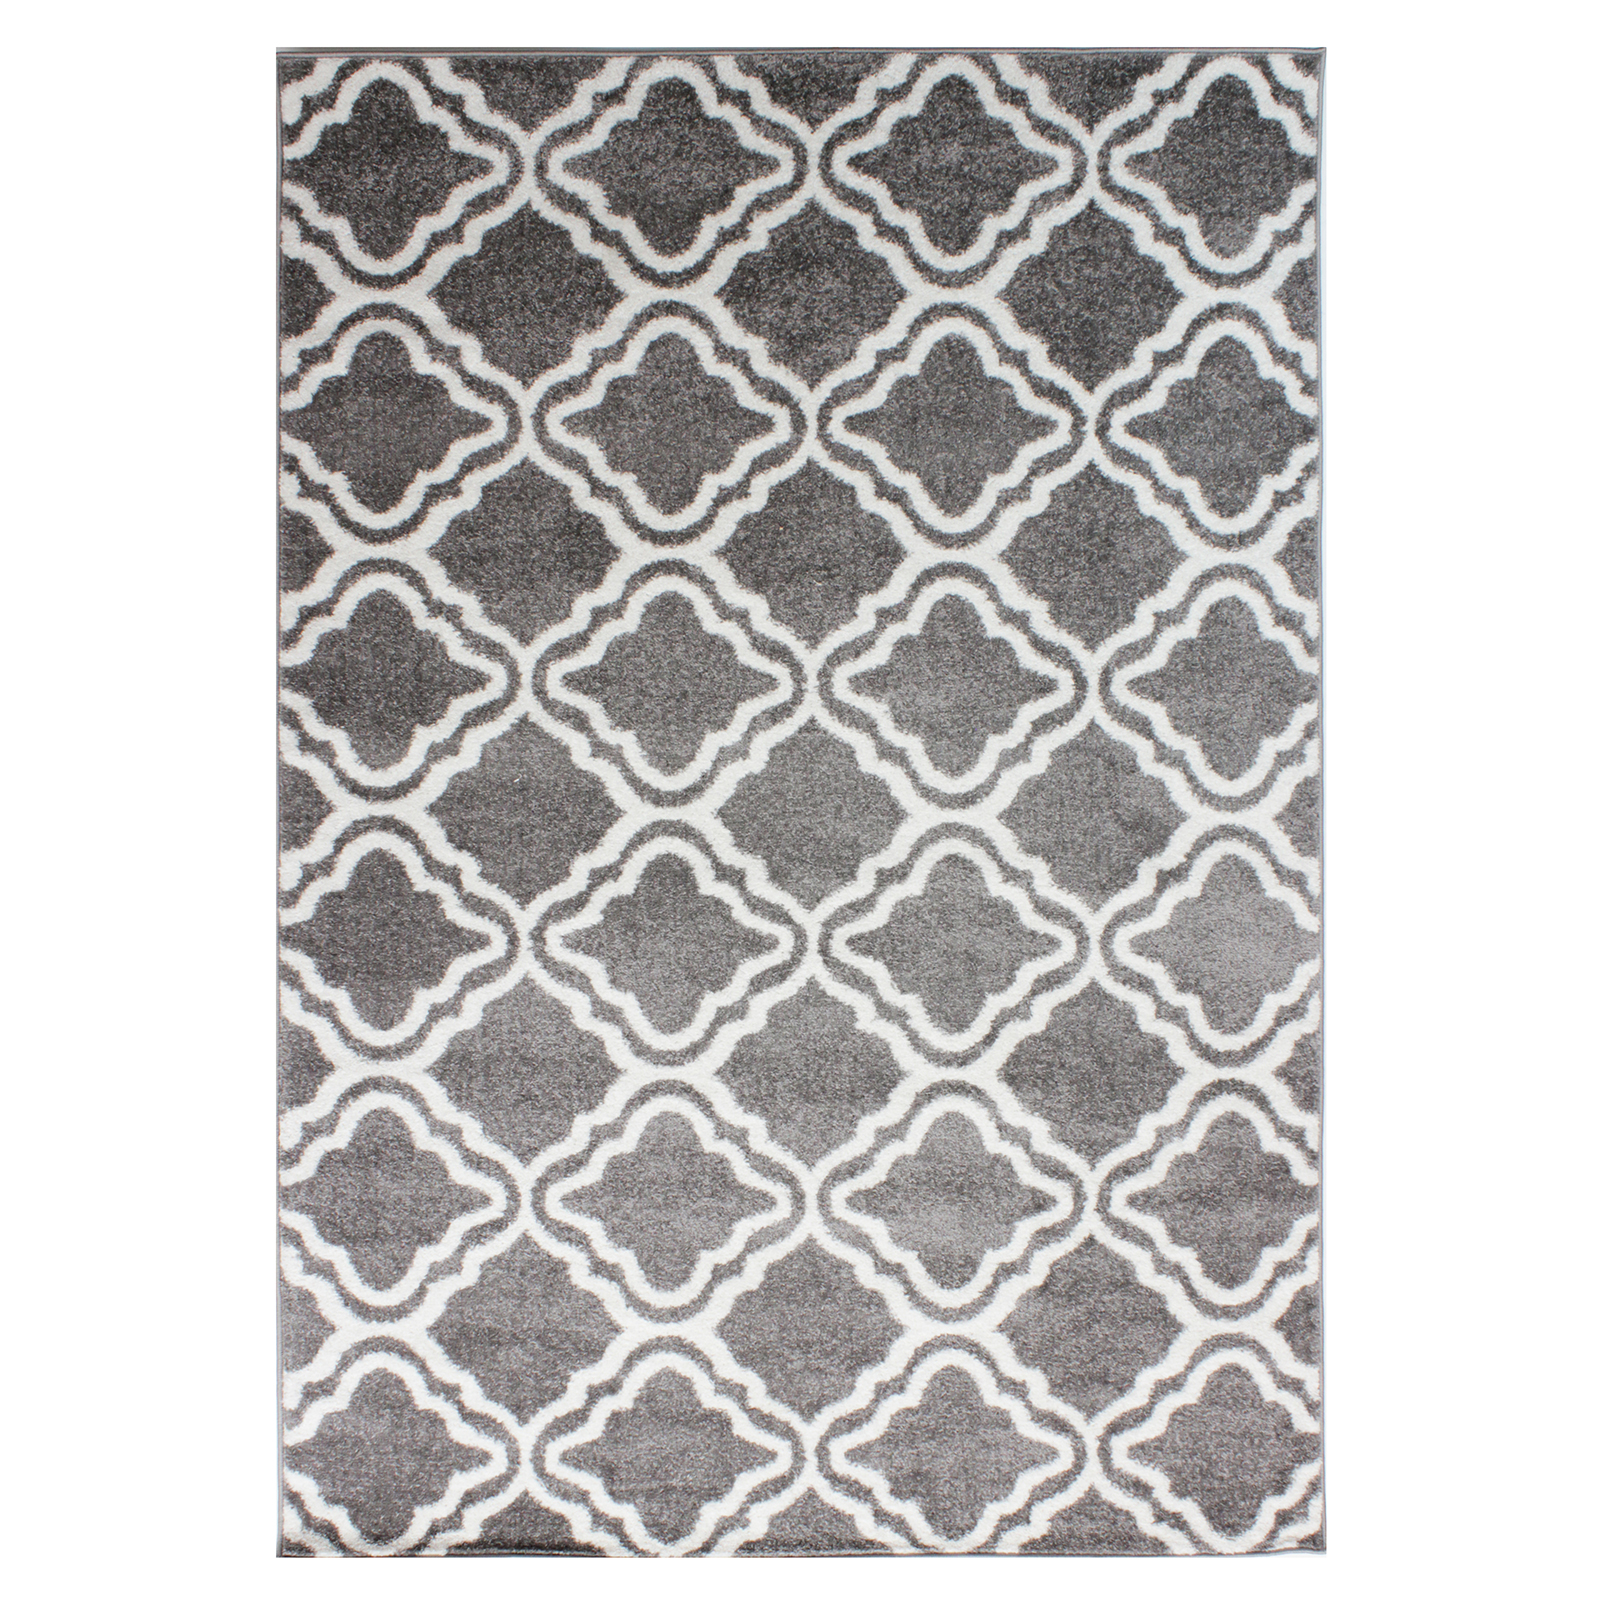 Moroccan Style Rug With Geometric Lattice Pattern